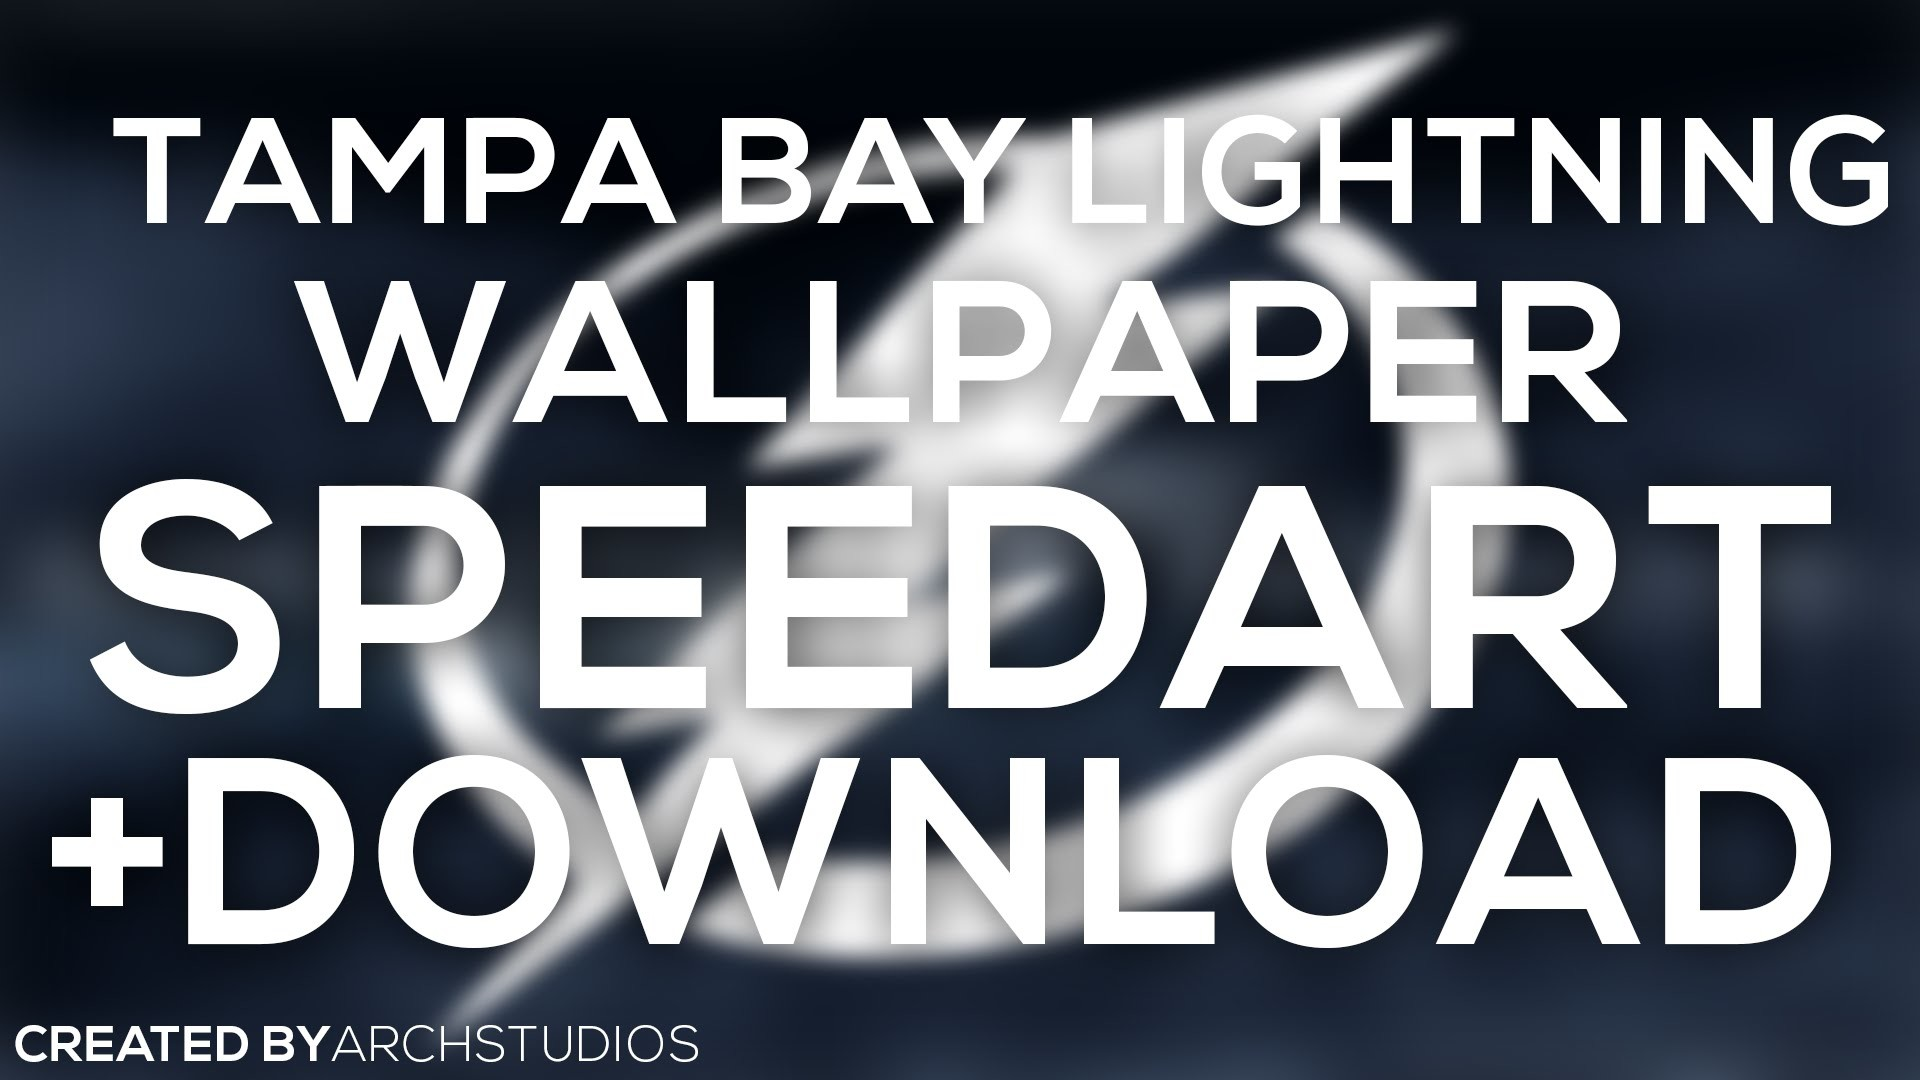 1920x1080 SPEEDART: Tampa Bay Lightning Wallpaper